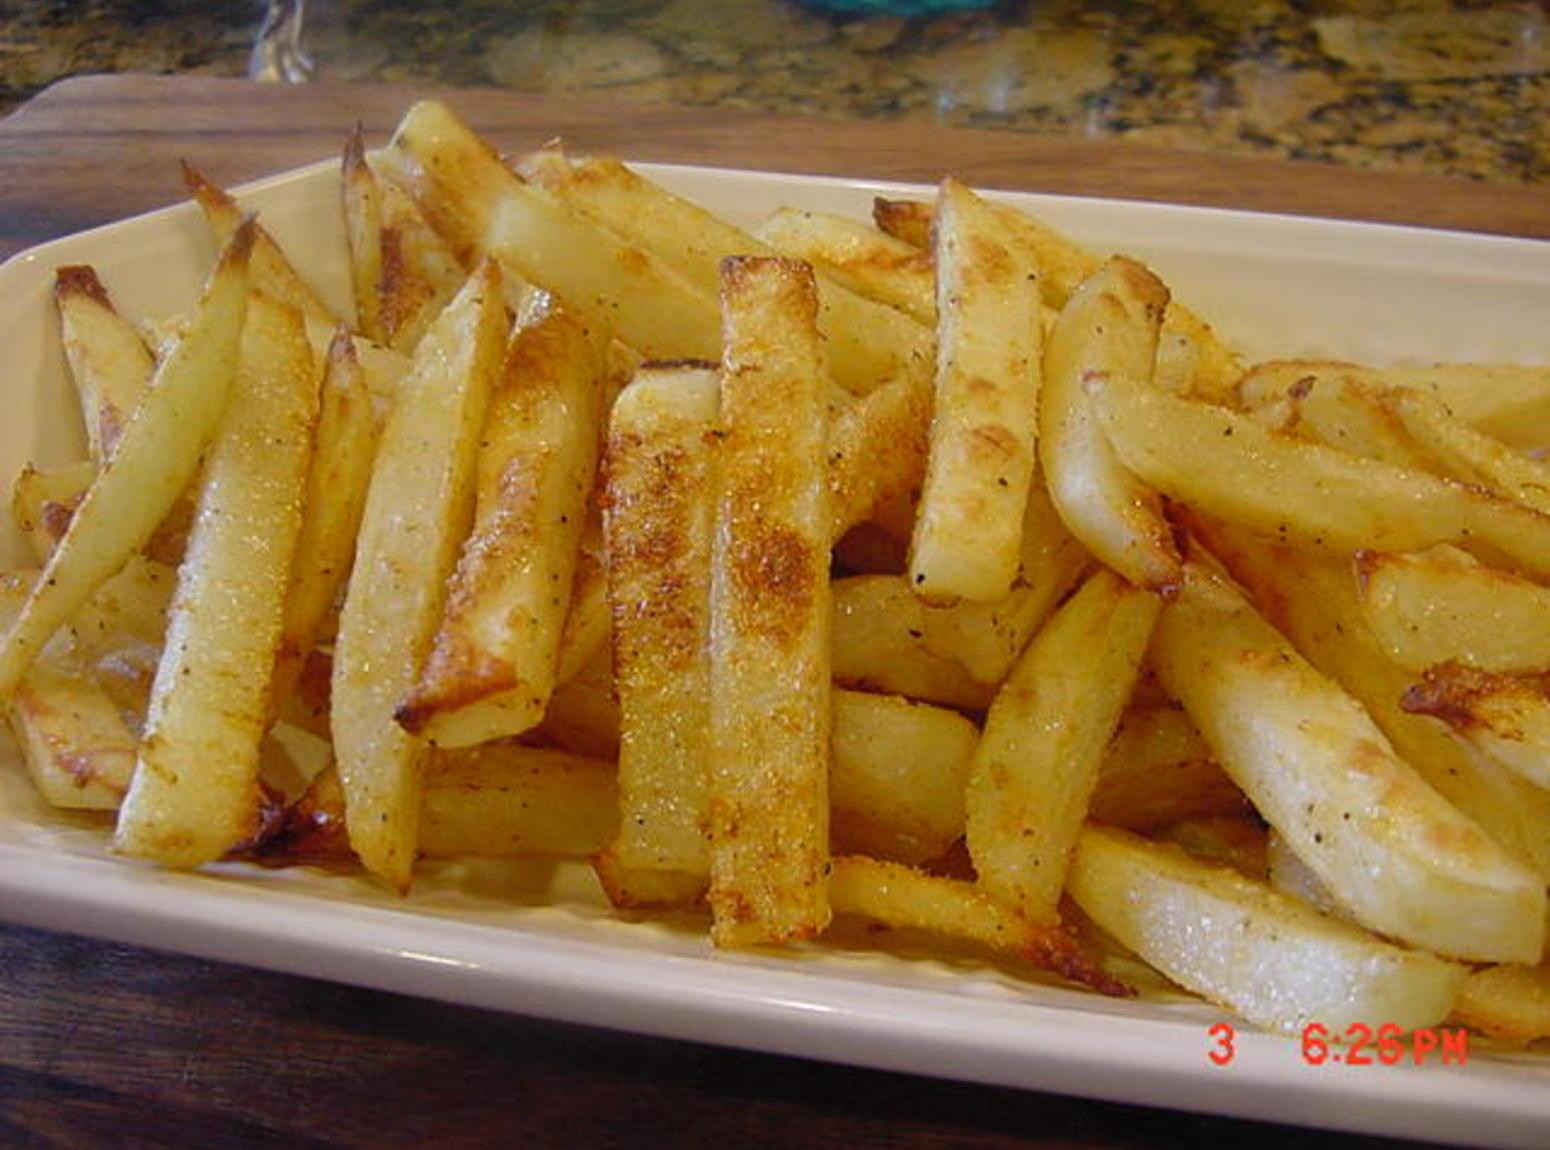 Baked Potato Fries  Best Oven Baked Fries And Potato Wedges Recipe 2